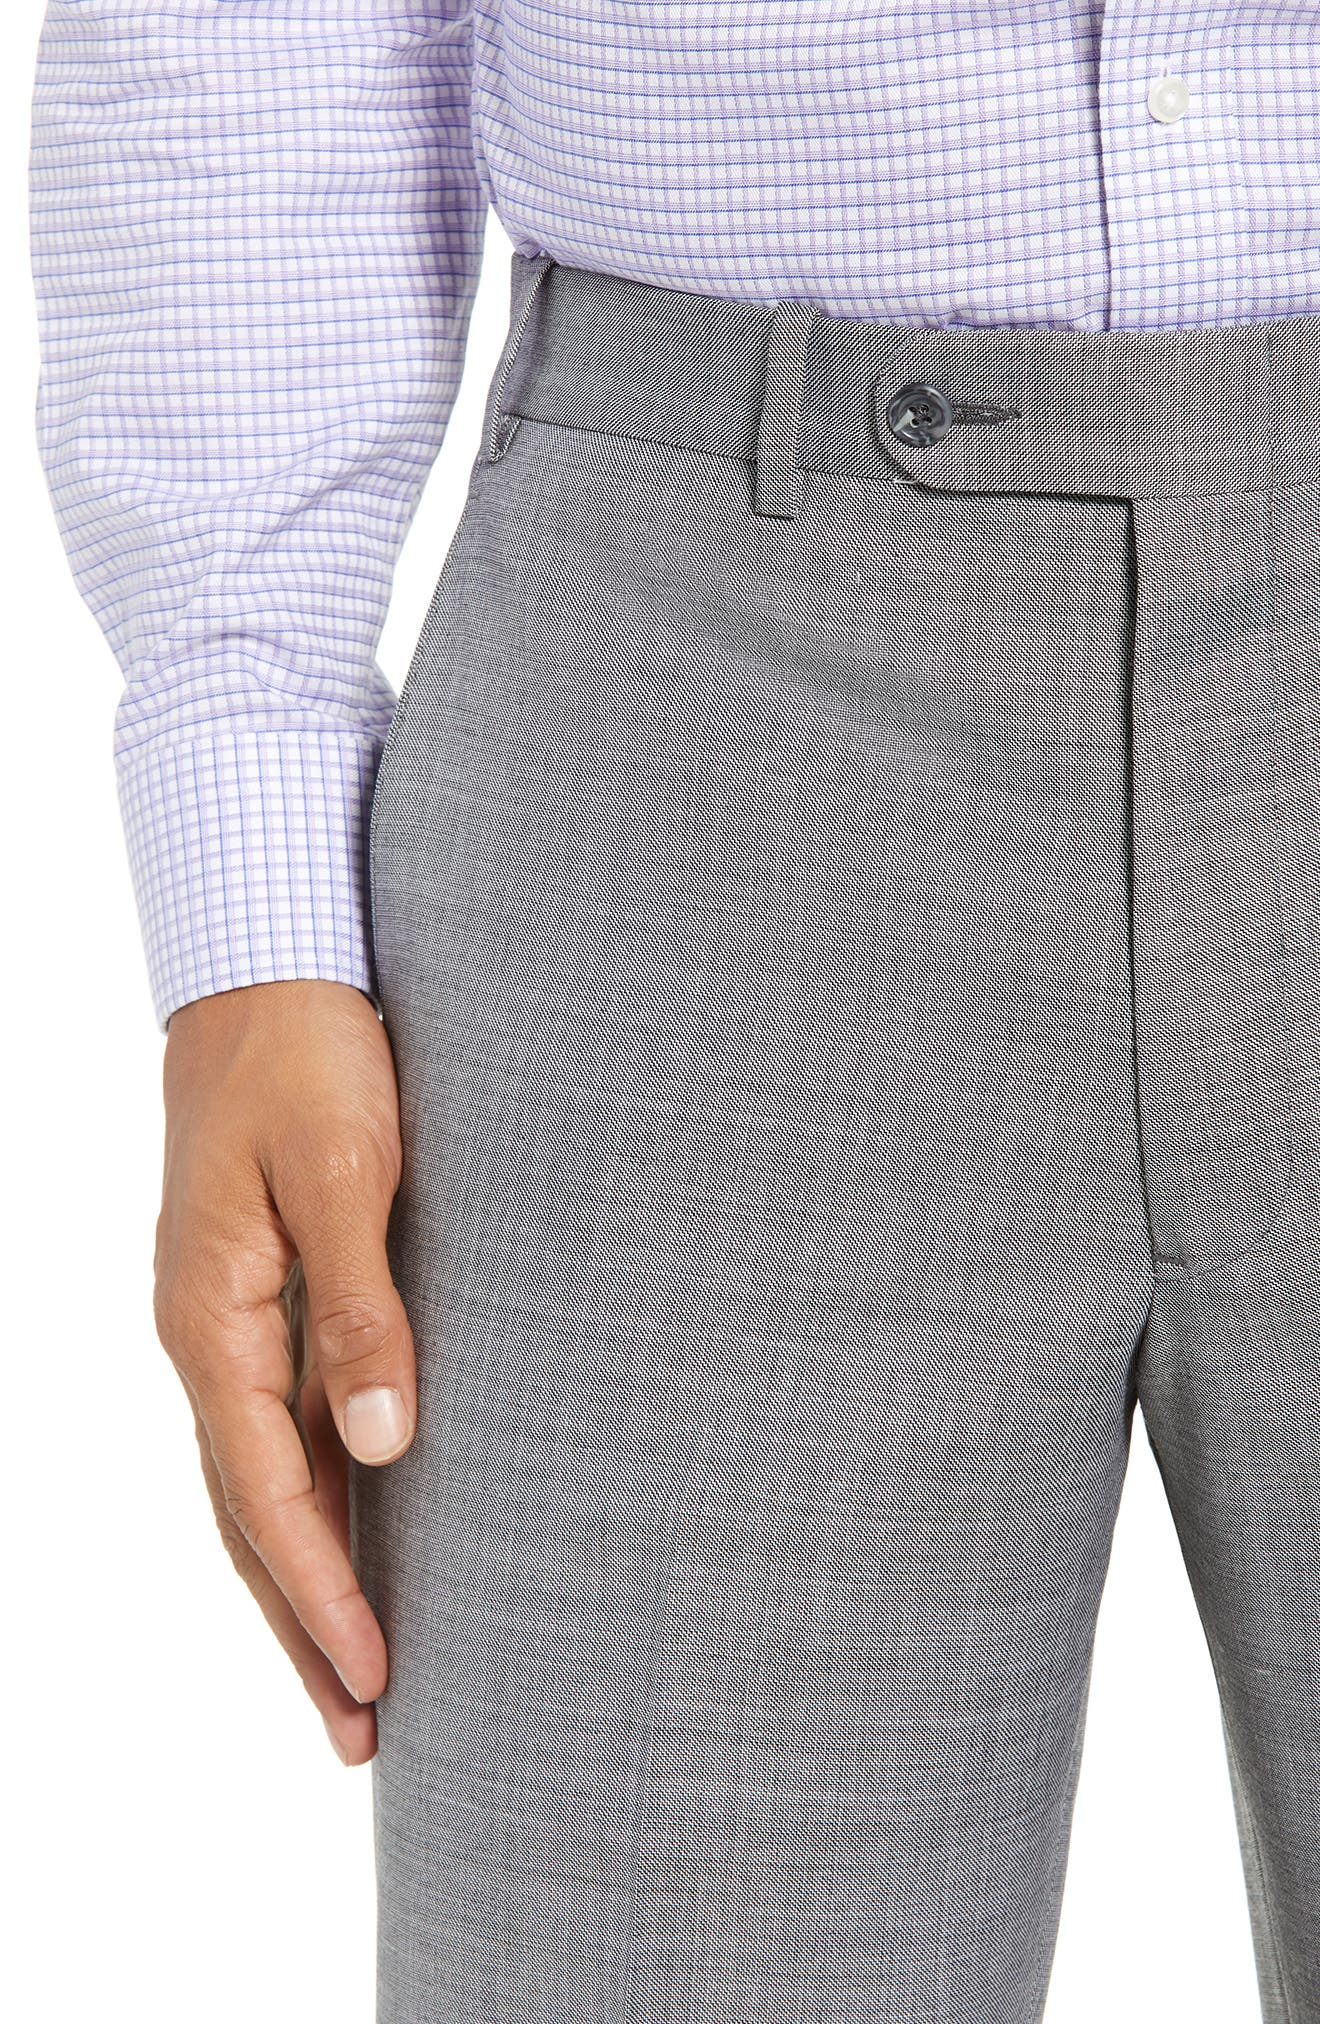 Torino Flat Front Solid Wool Trousers,                             Alternate thumbnail 11, color,